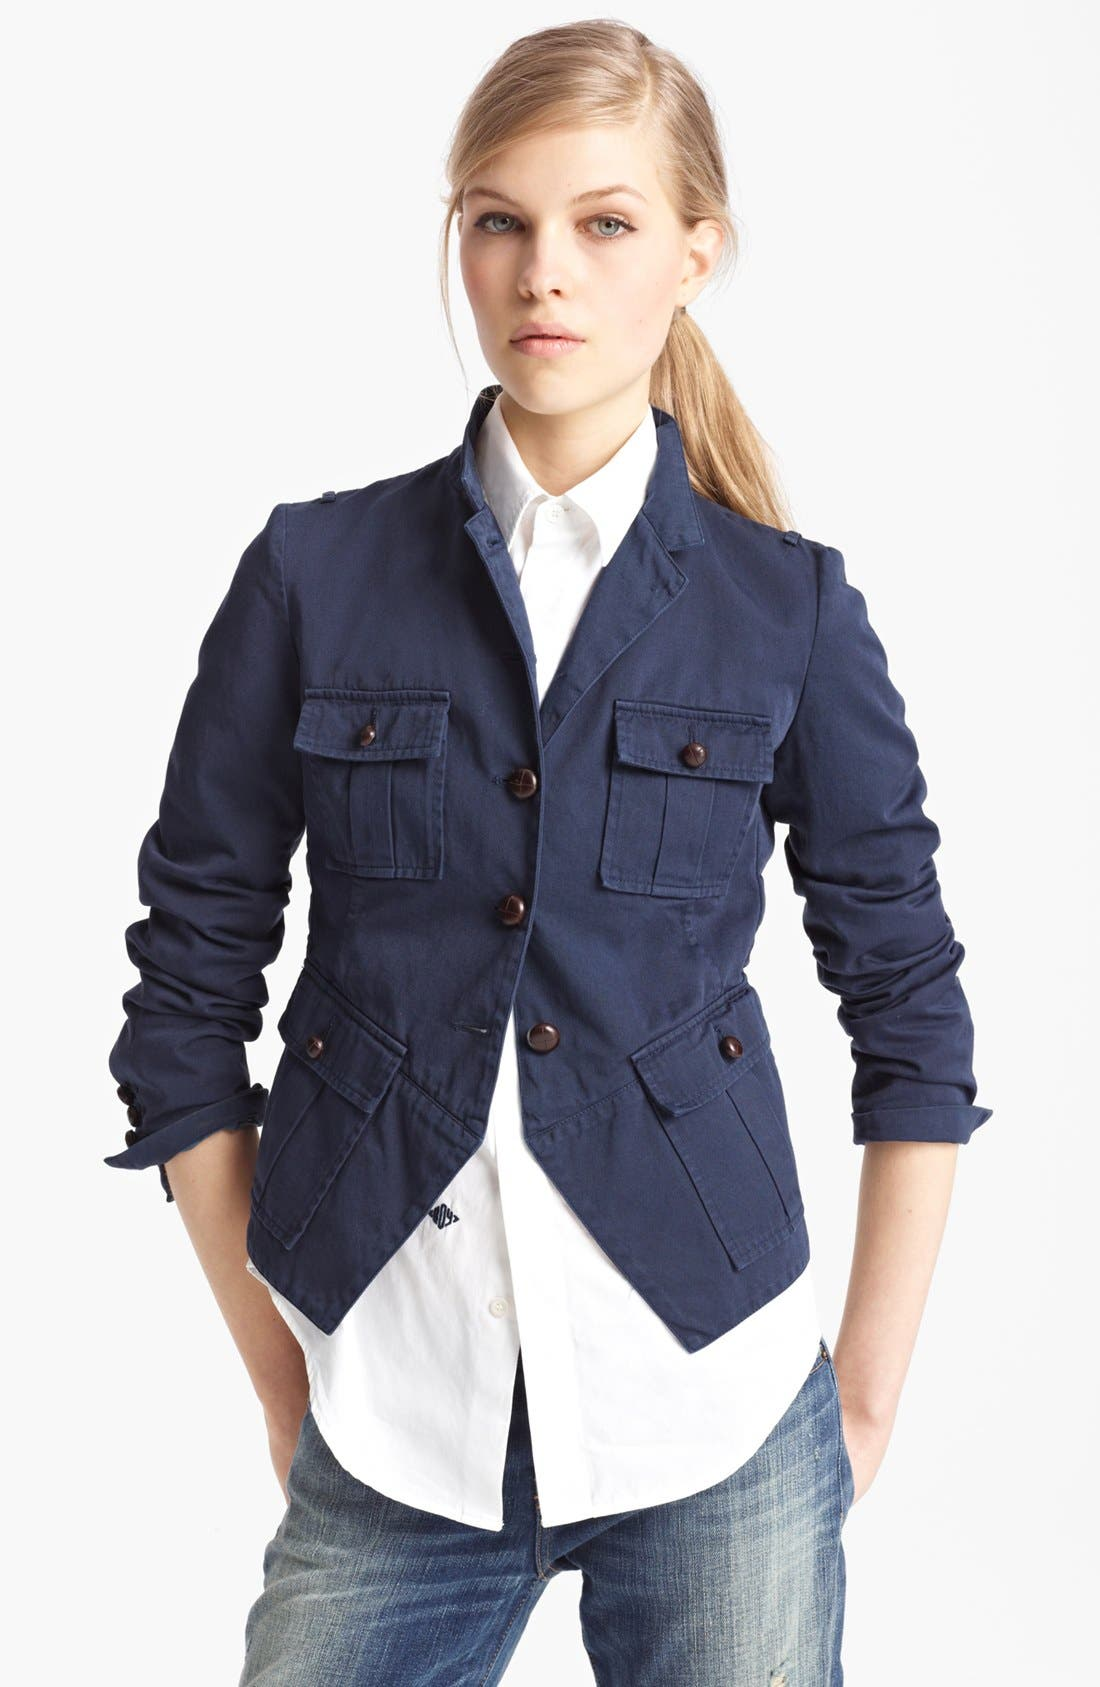 Alternate Image 1 Selected - Band of Outsiders Military Jacket